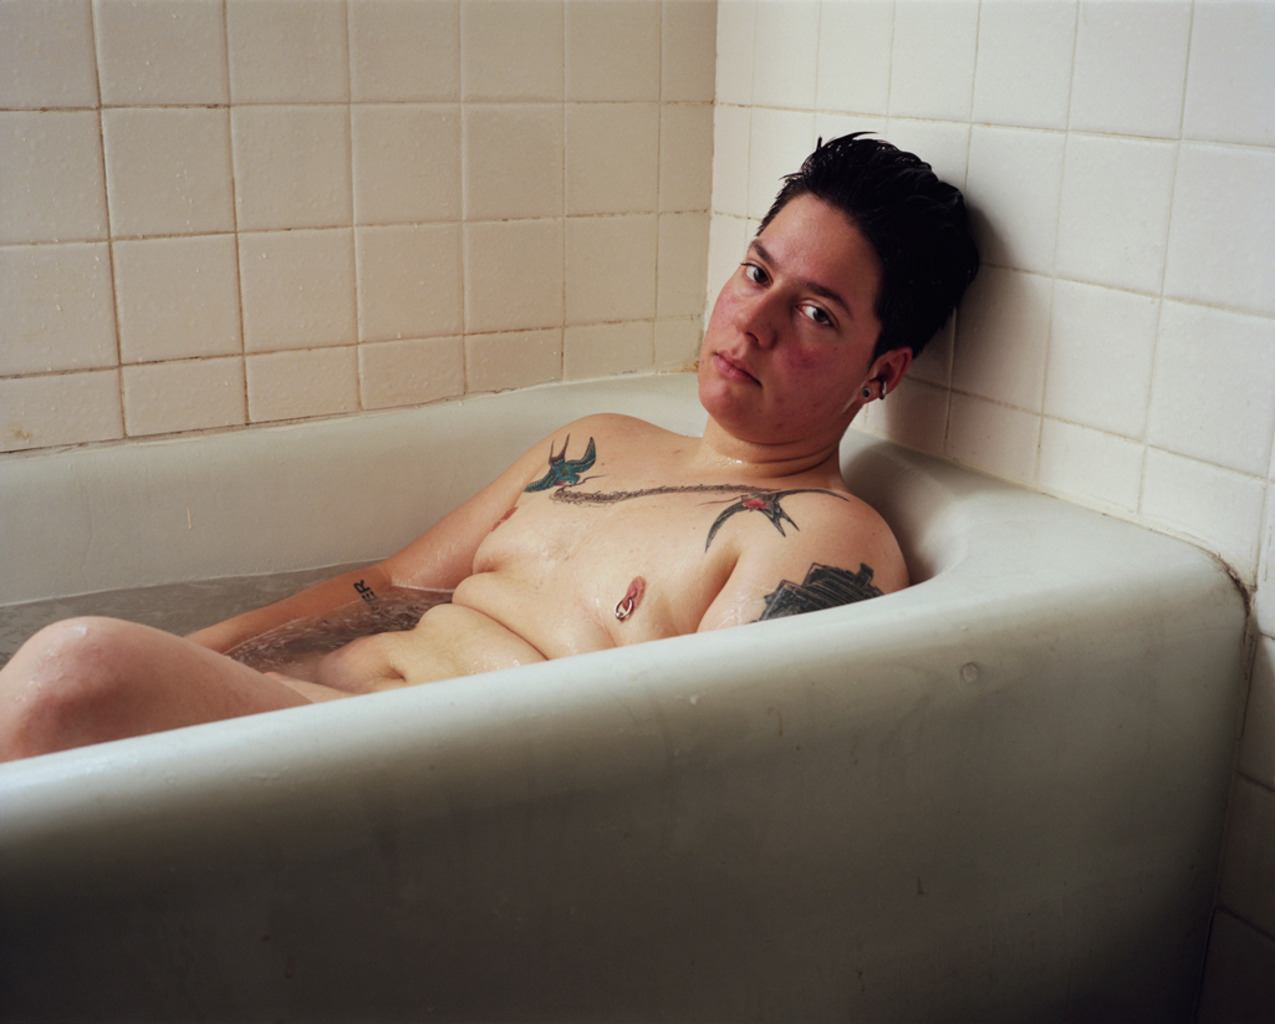 Self-portrait (bath), 2012